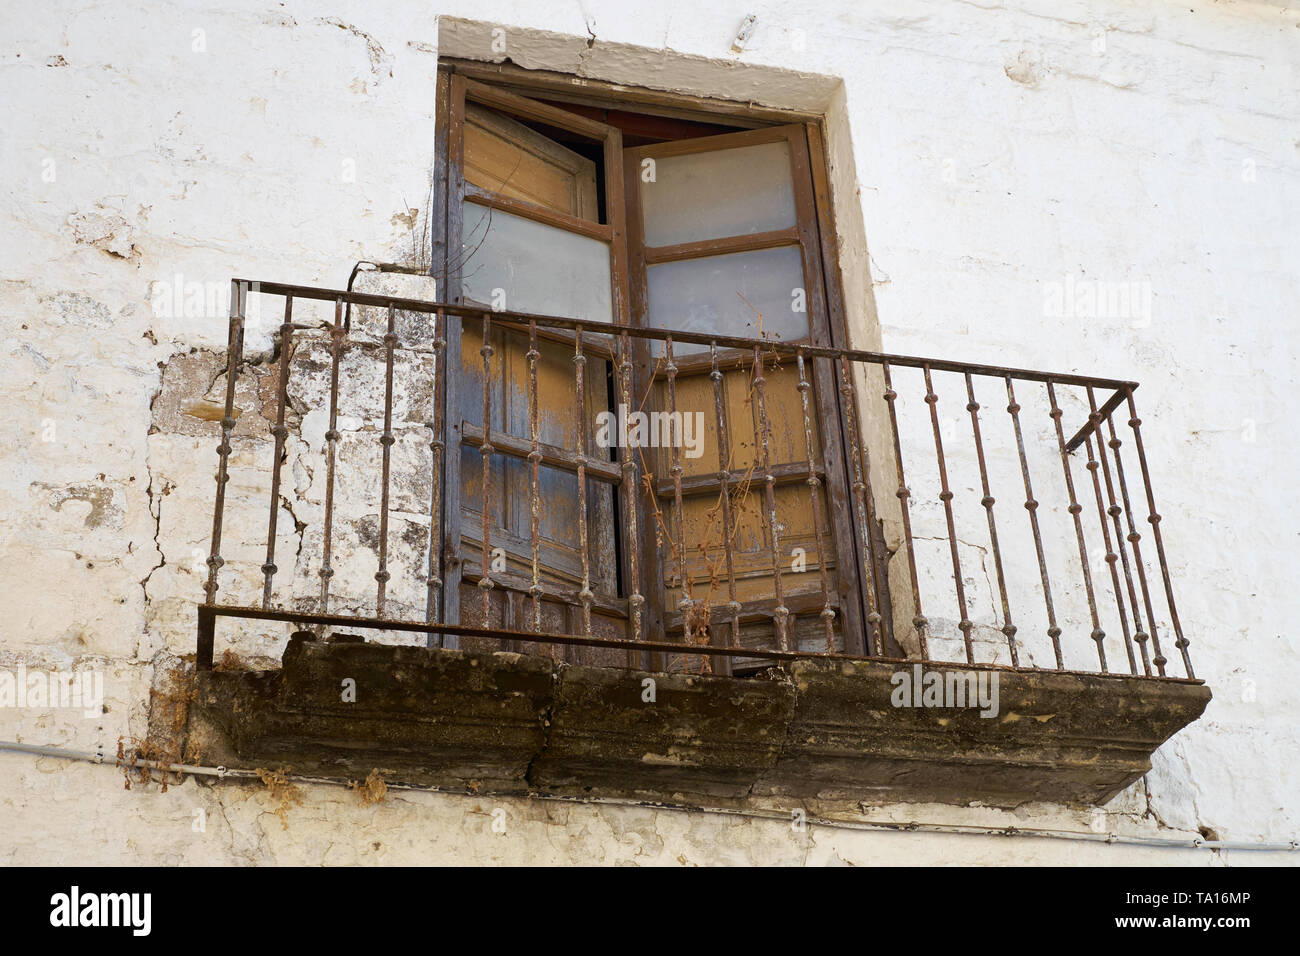 A rusty balcony. Baeza, Jaén province, Andalusia, Spain. Stock Photo